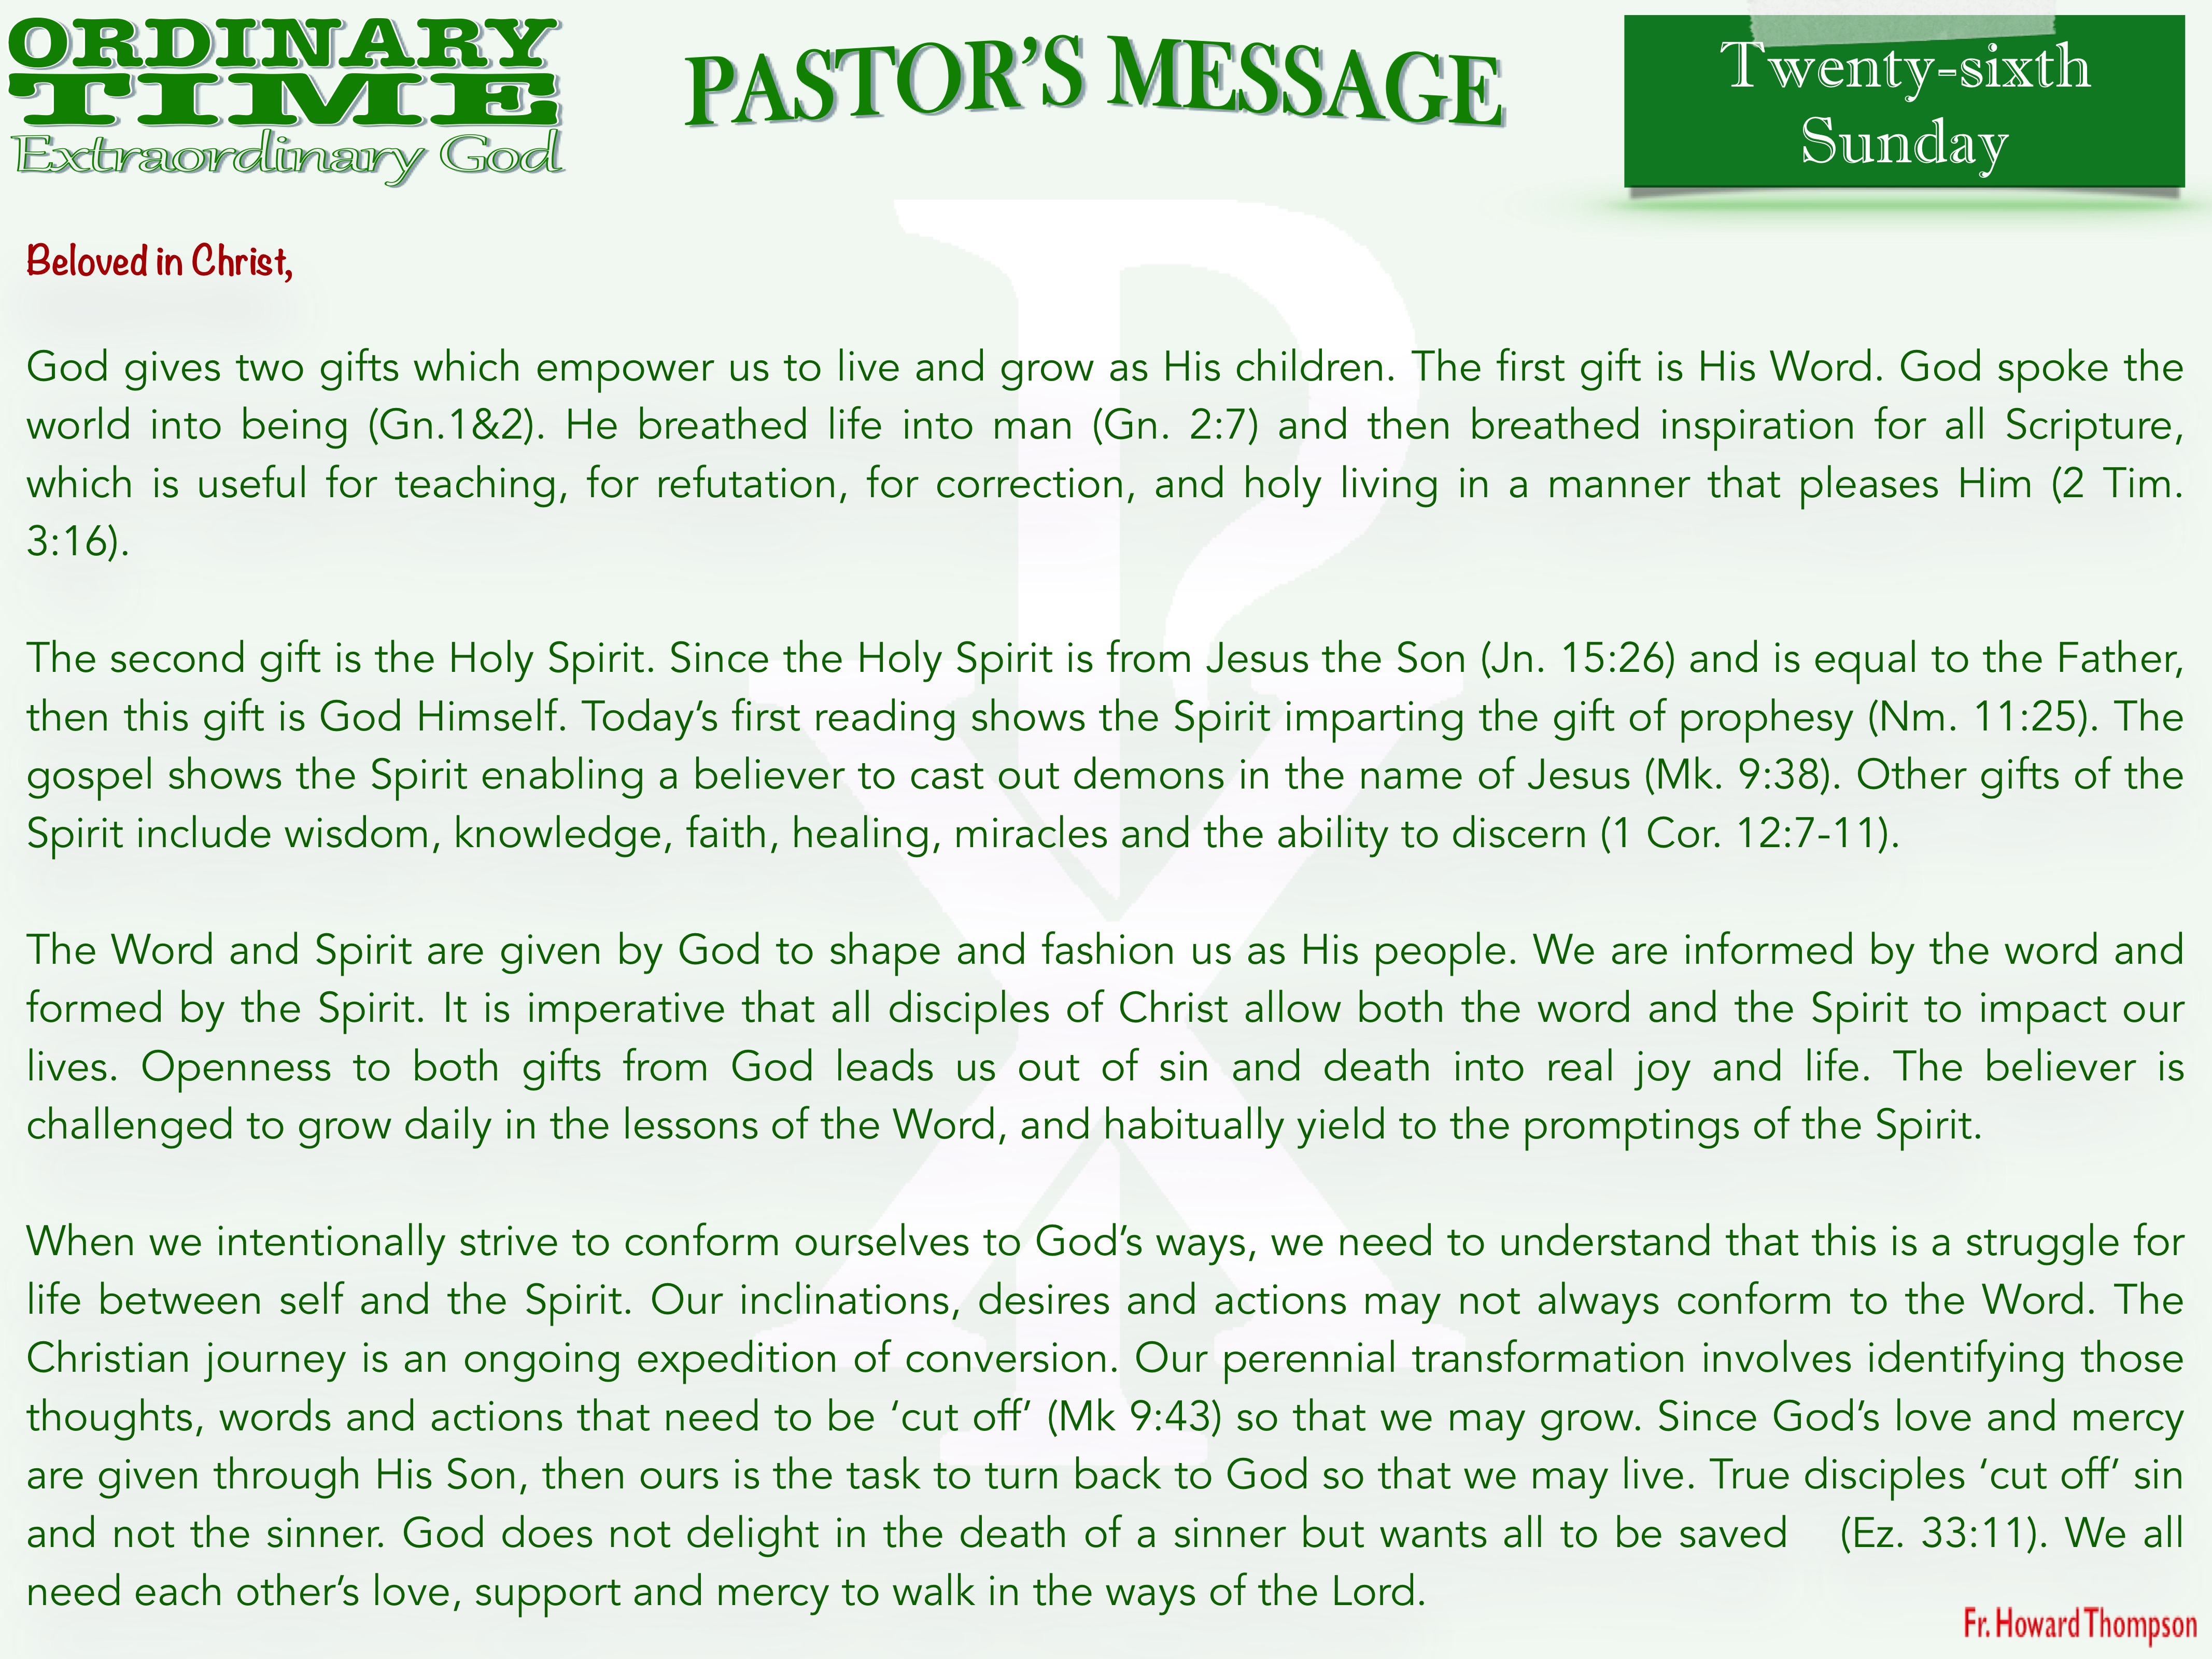 Pastor's Message - 32 Twenty-sixth Sunda